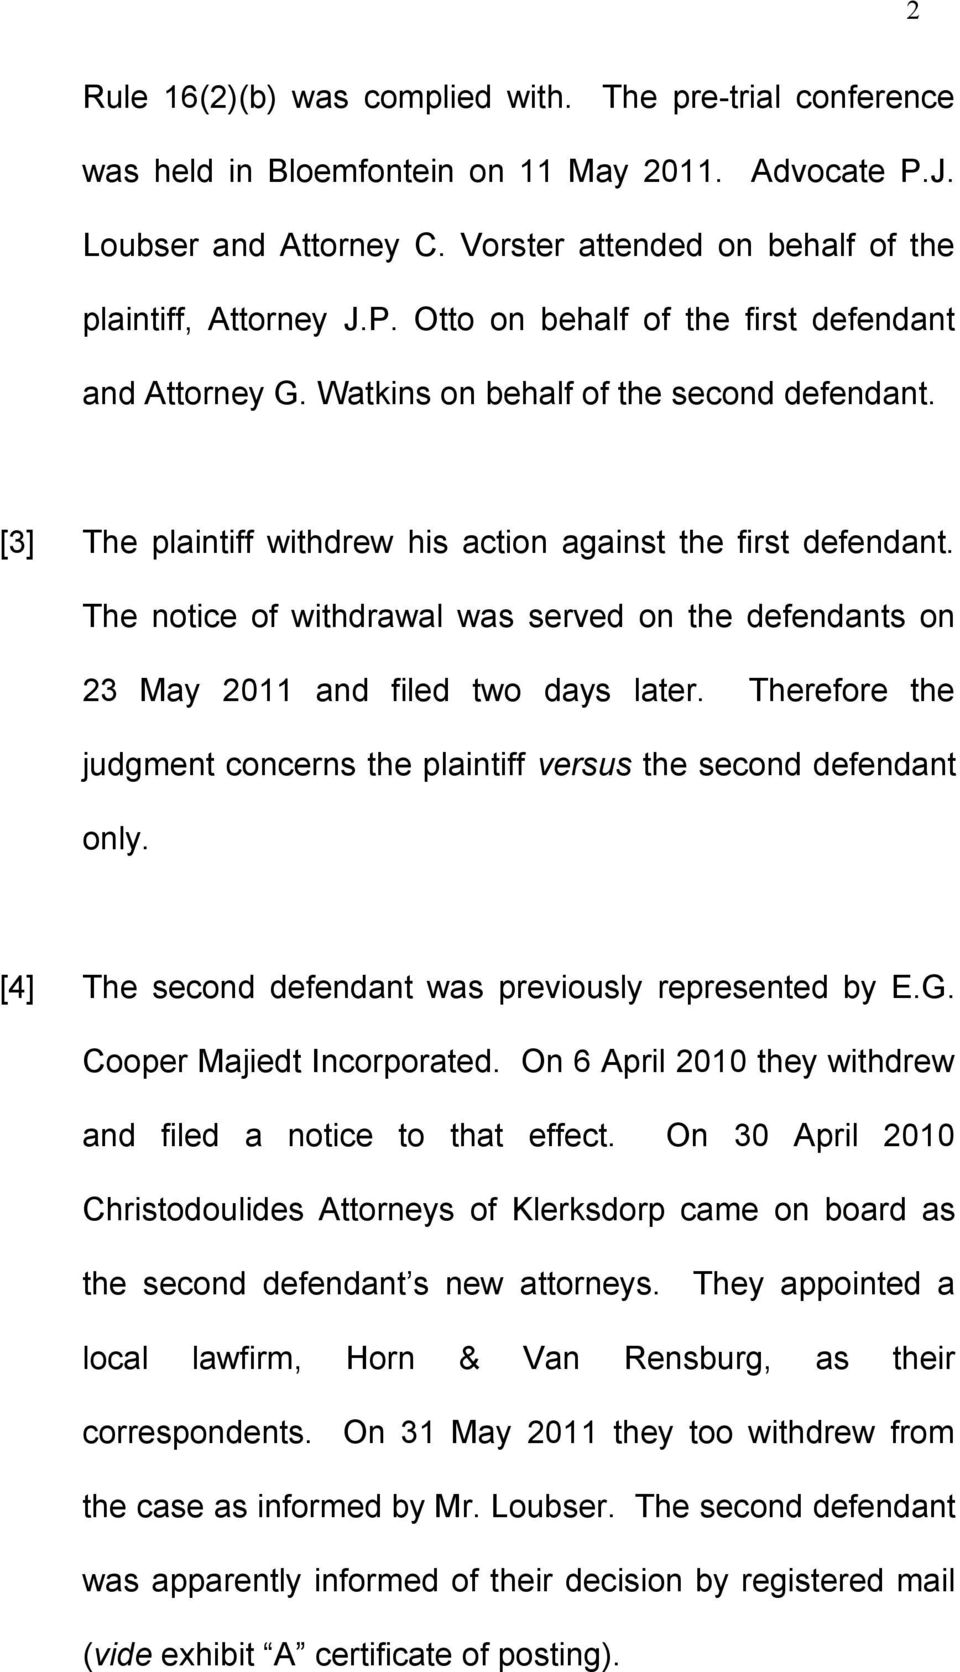 The notice of withdrawal was served on the defendants on 23 May 2011 and filed two days later. Therefore the judgment concerns the plaintiff versus the second defendant only.